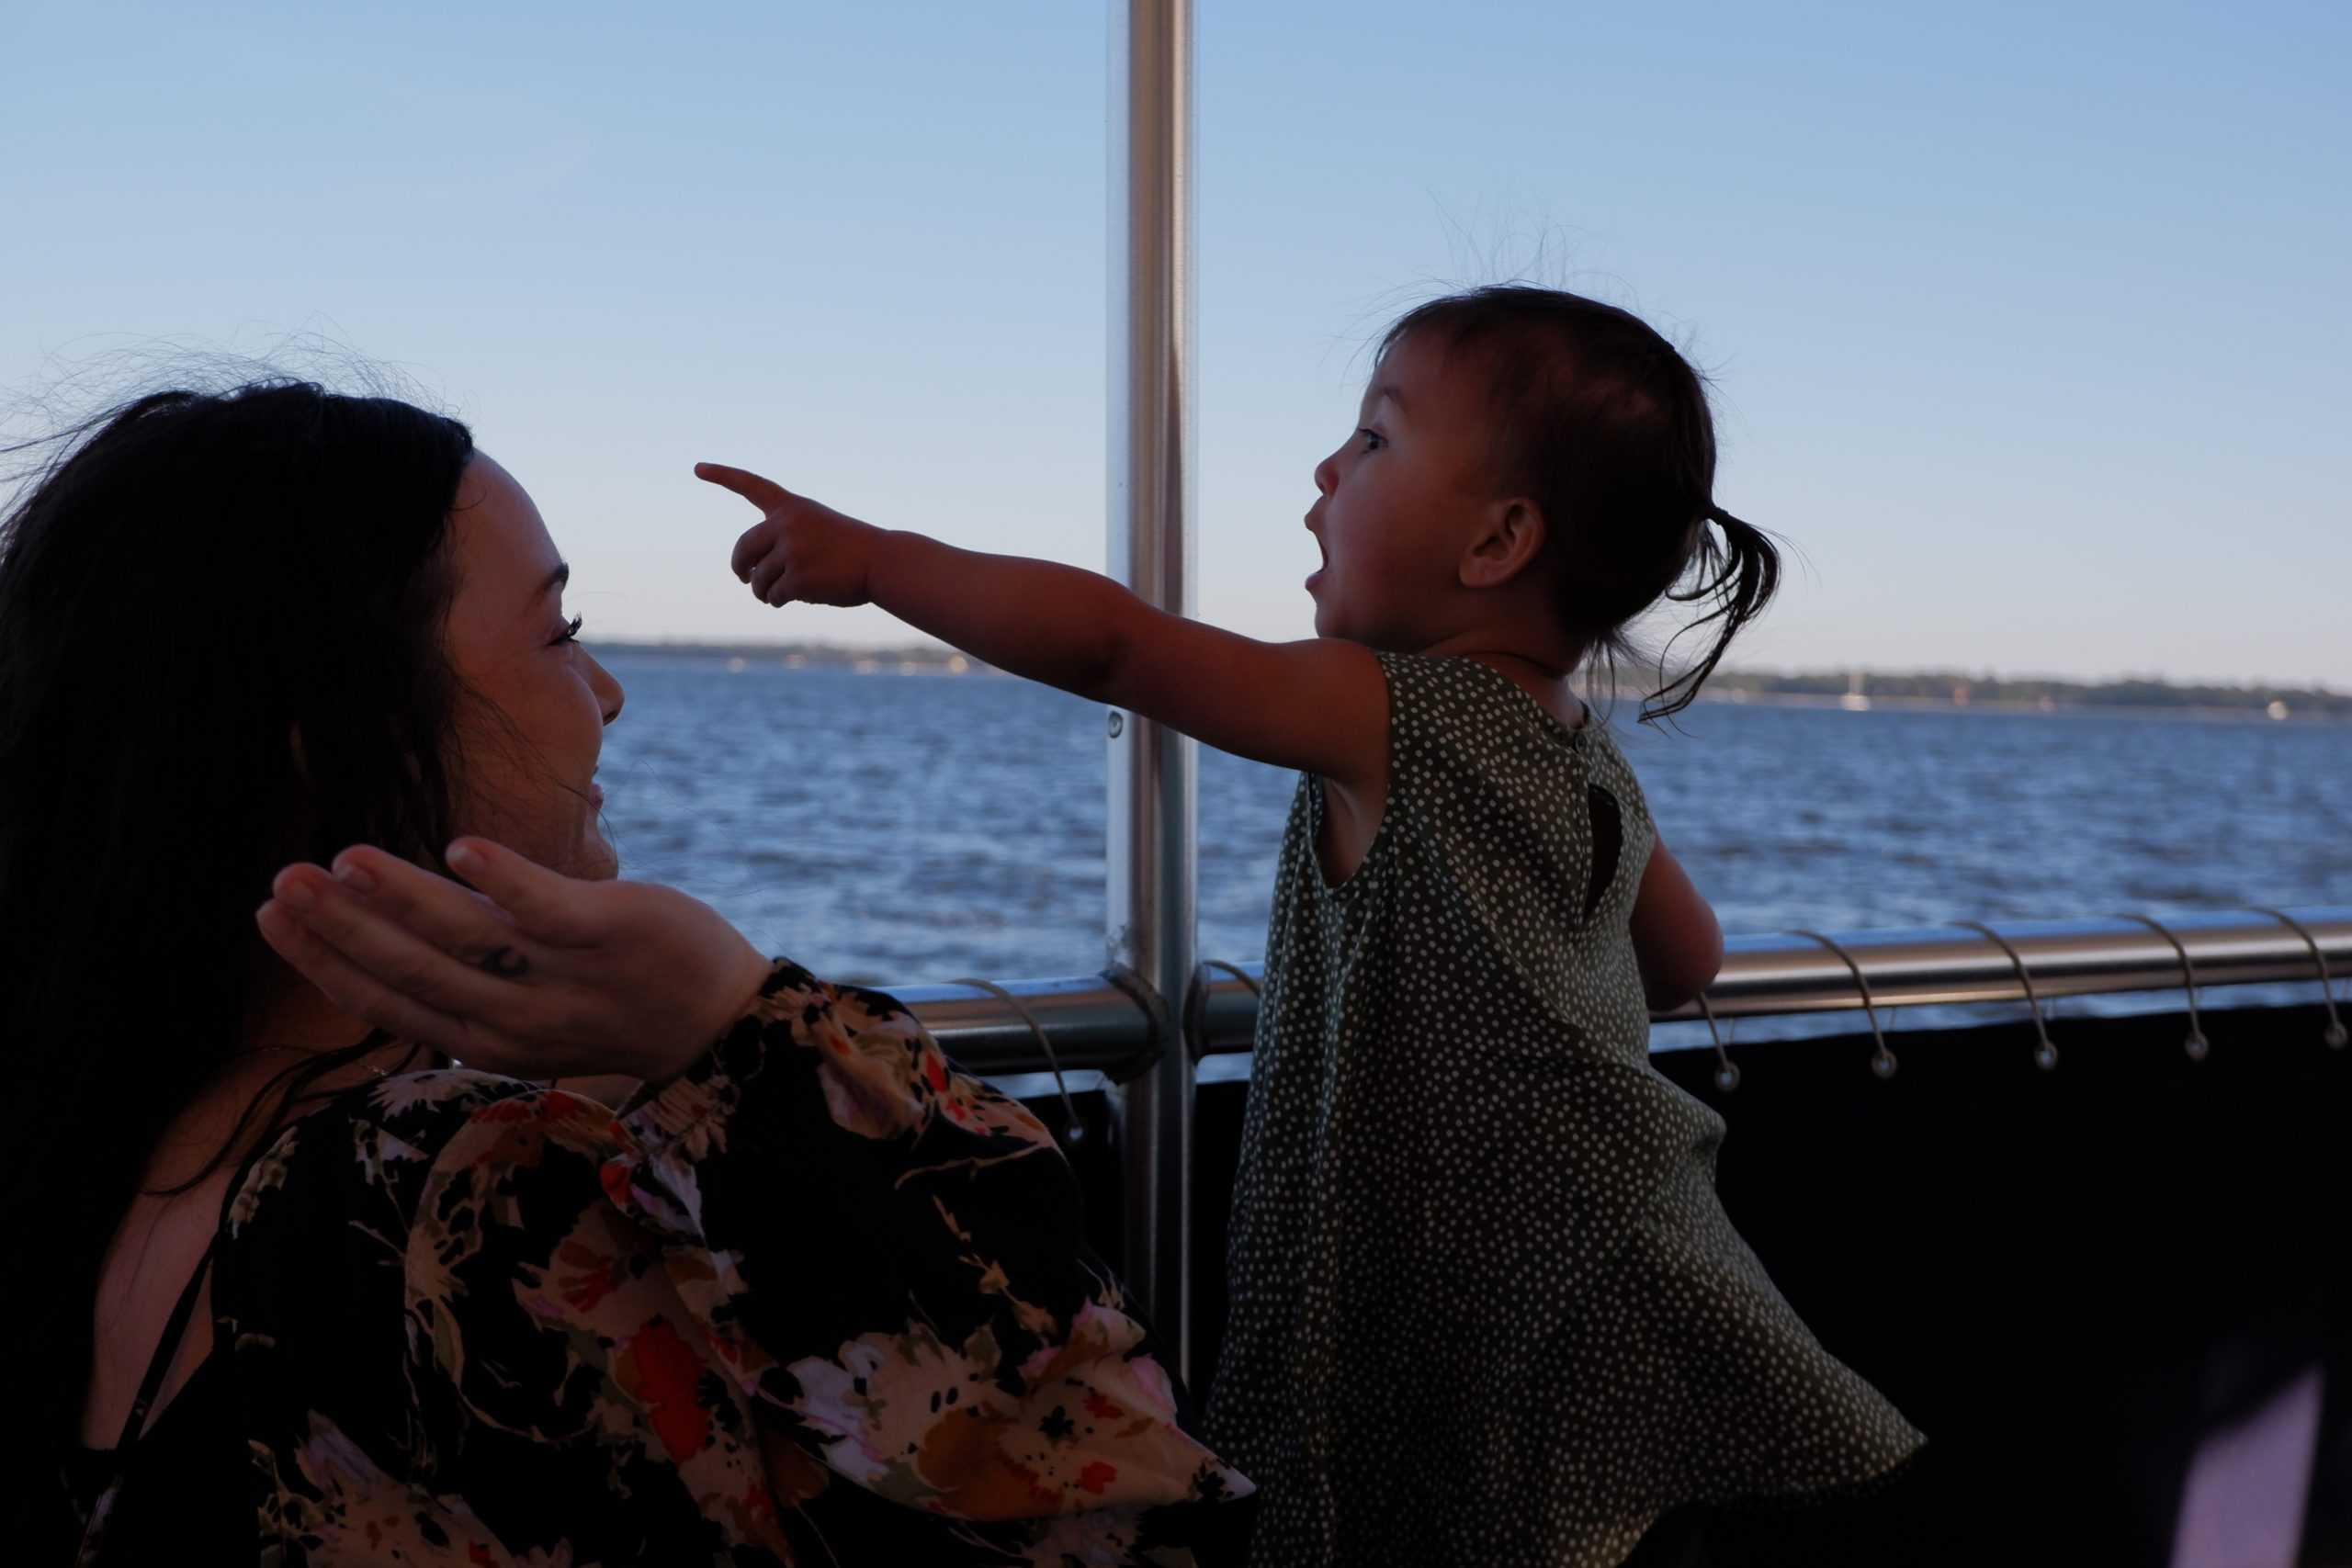 Young kid excitedly pointing to something in the distance from the boat. Family boat charters Charleston, SC